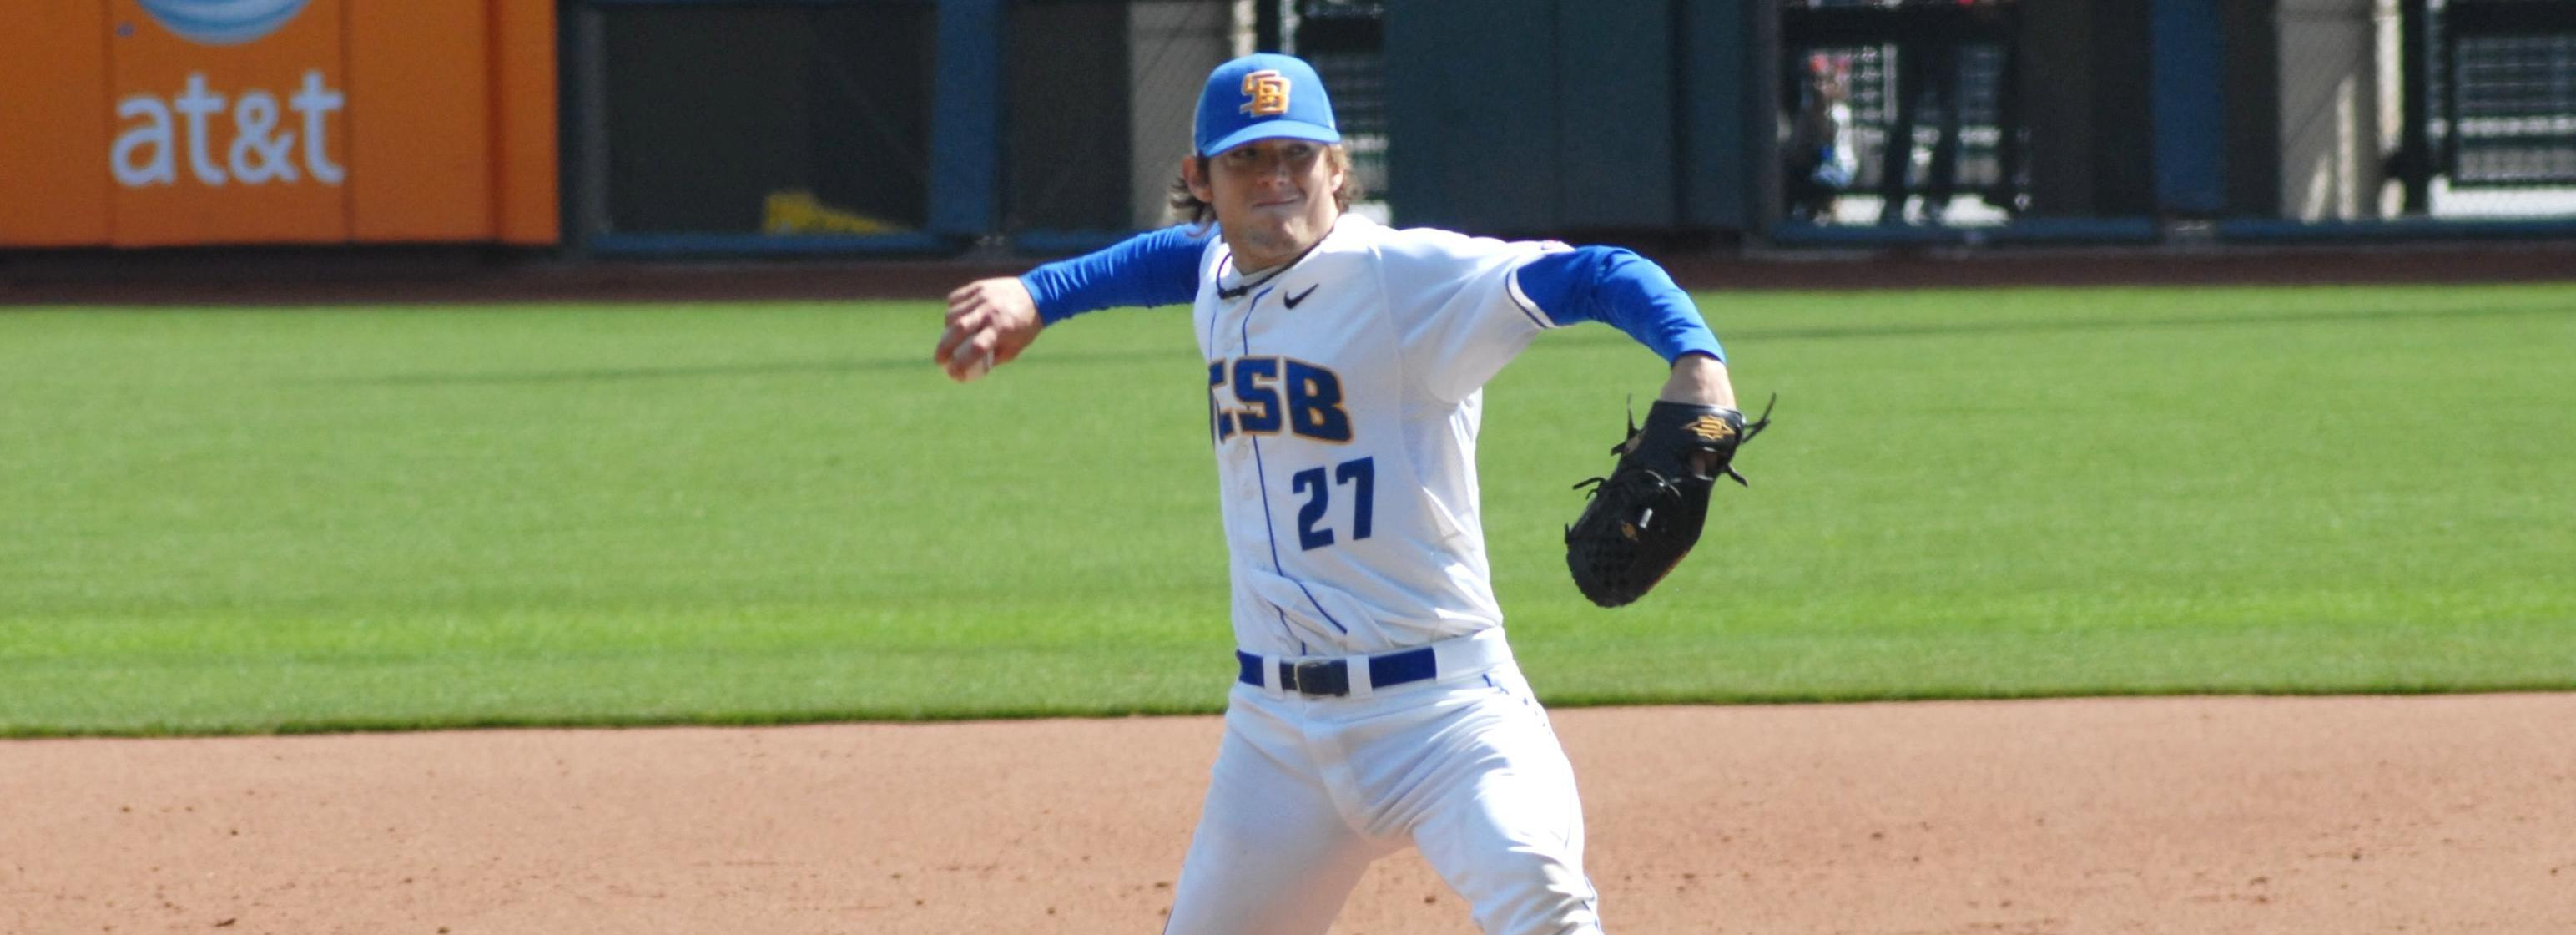 Vedo Flirts With No-No, Helps Gauchos to Second Straight Shutout of UC Davis, 1-0